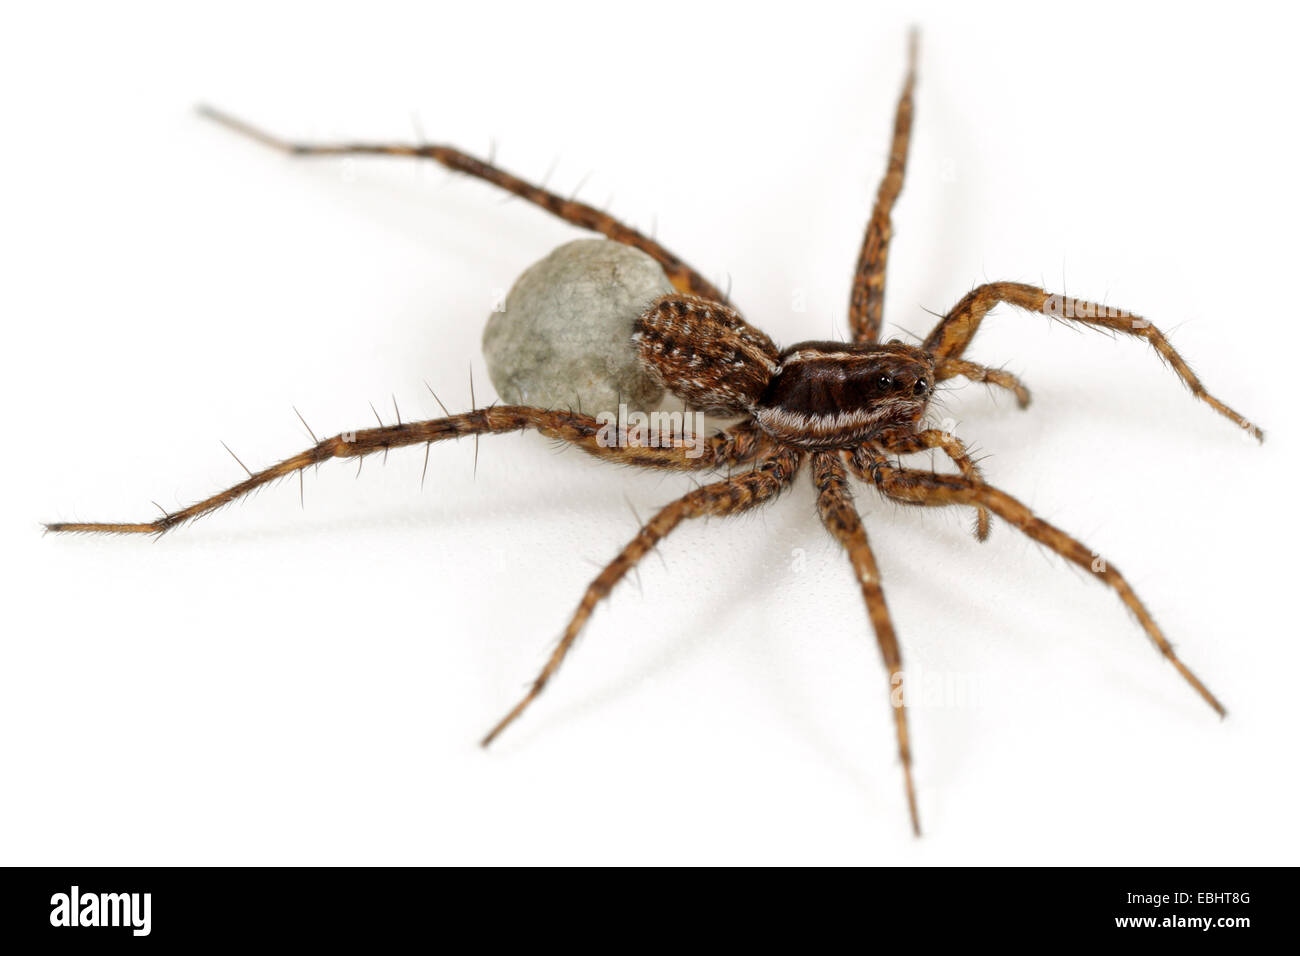 Female Pardosa palustris spider on white background. Family Lycosidae, Wolf spiders. The spider is carrying an egg Stock Photo